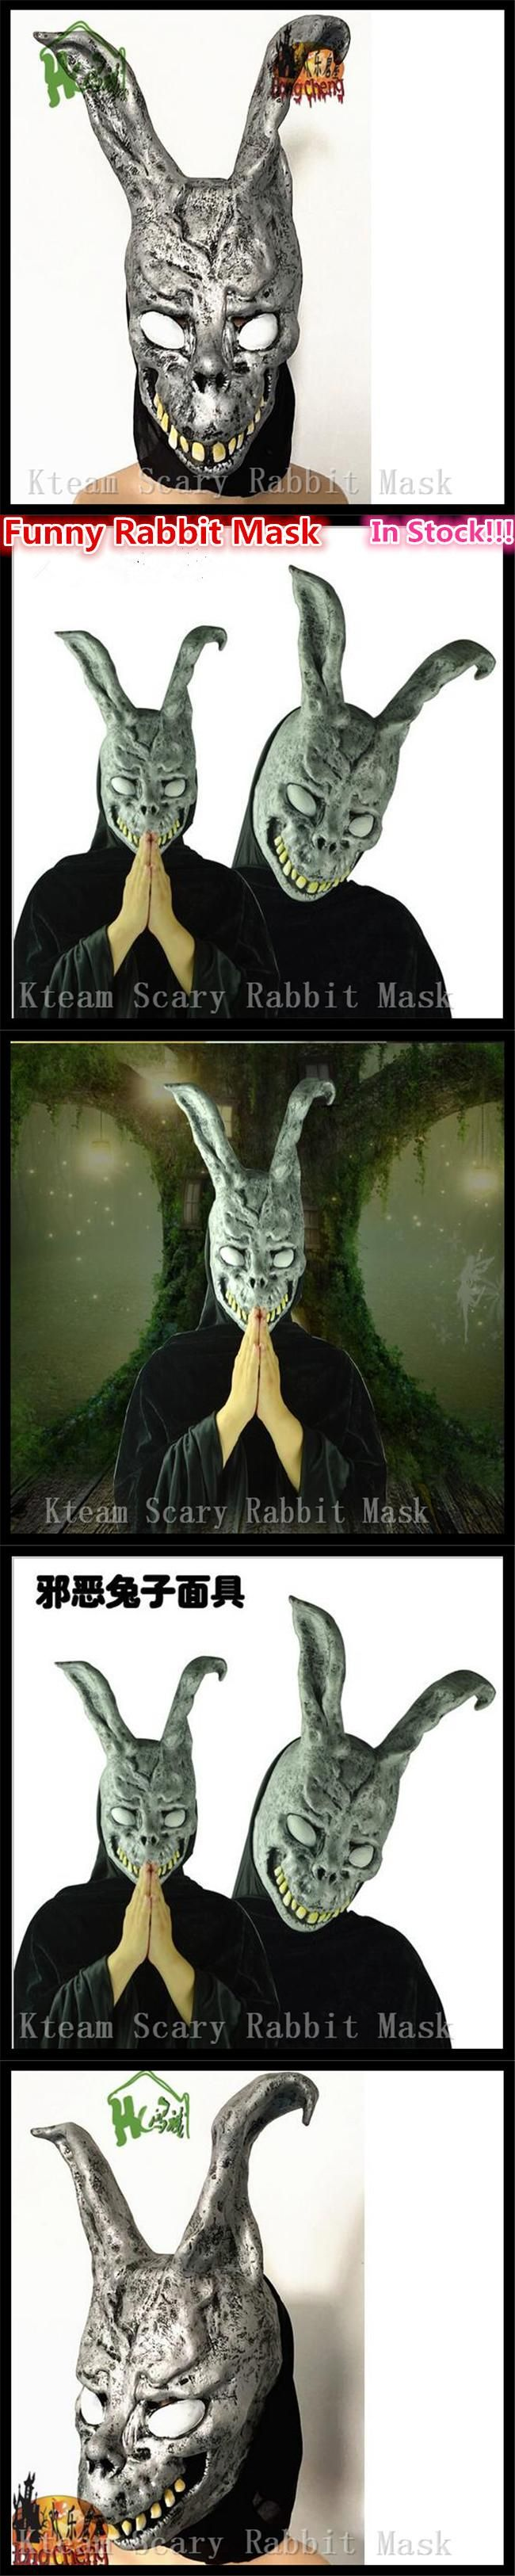 Adults Size Halloween Party Cosplay Animal head Carnival Mask Scary Donnie Darko Rabbit Mask Horror Ghost Rabbit Zombie Mask